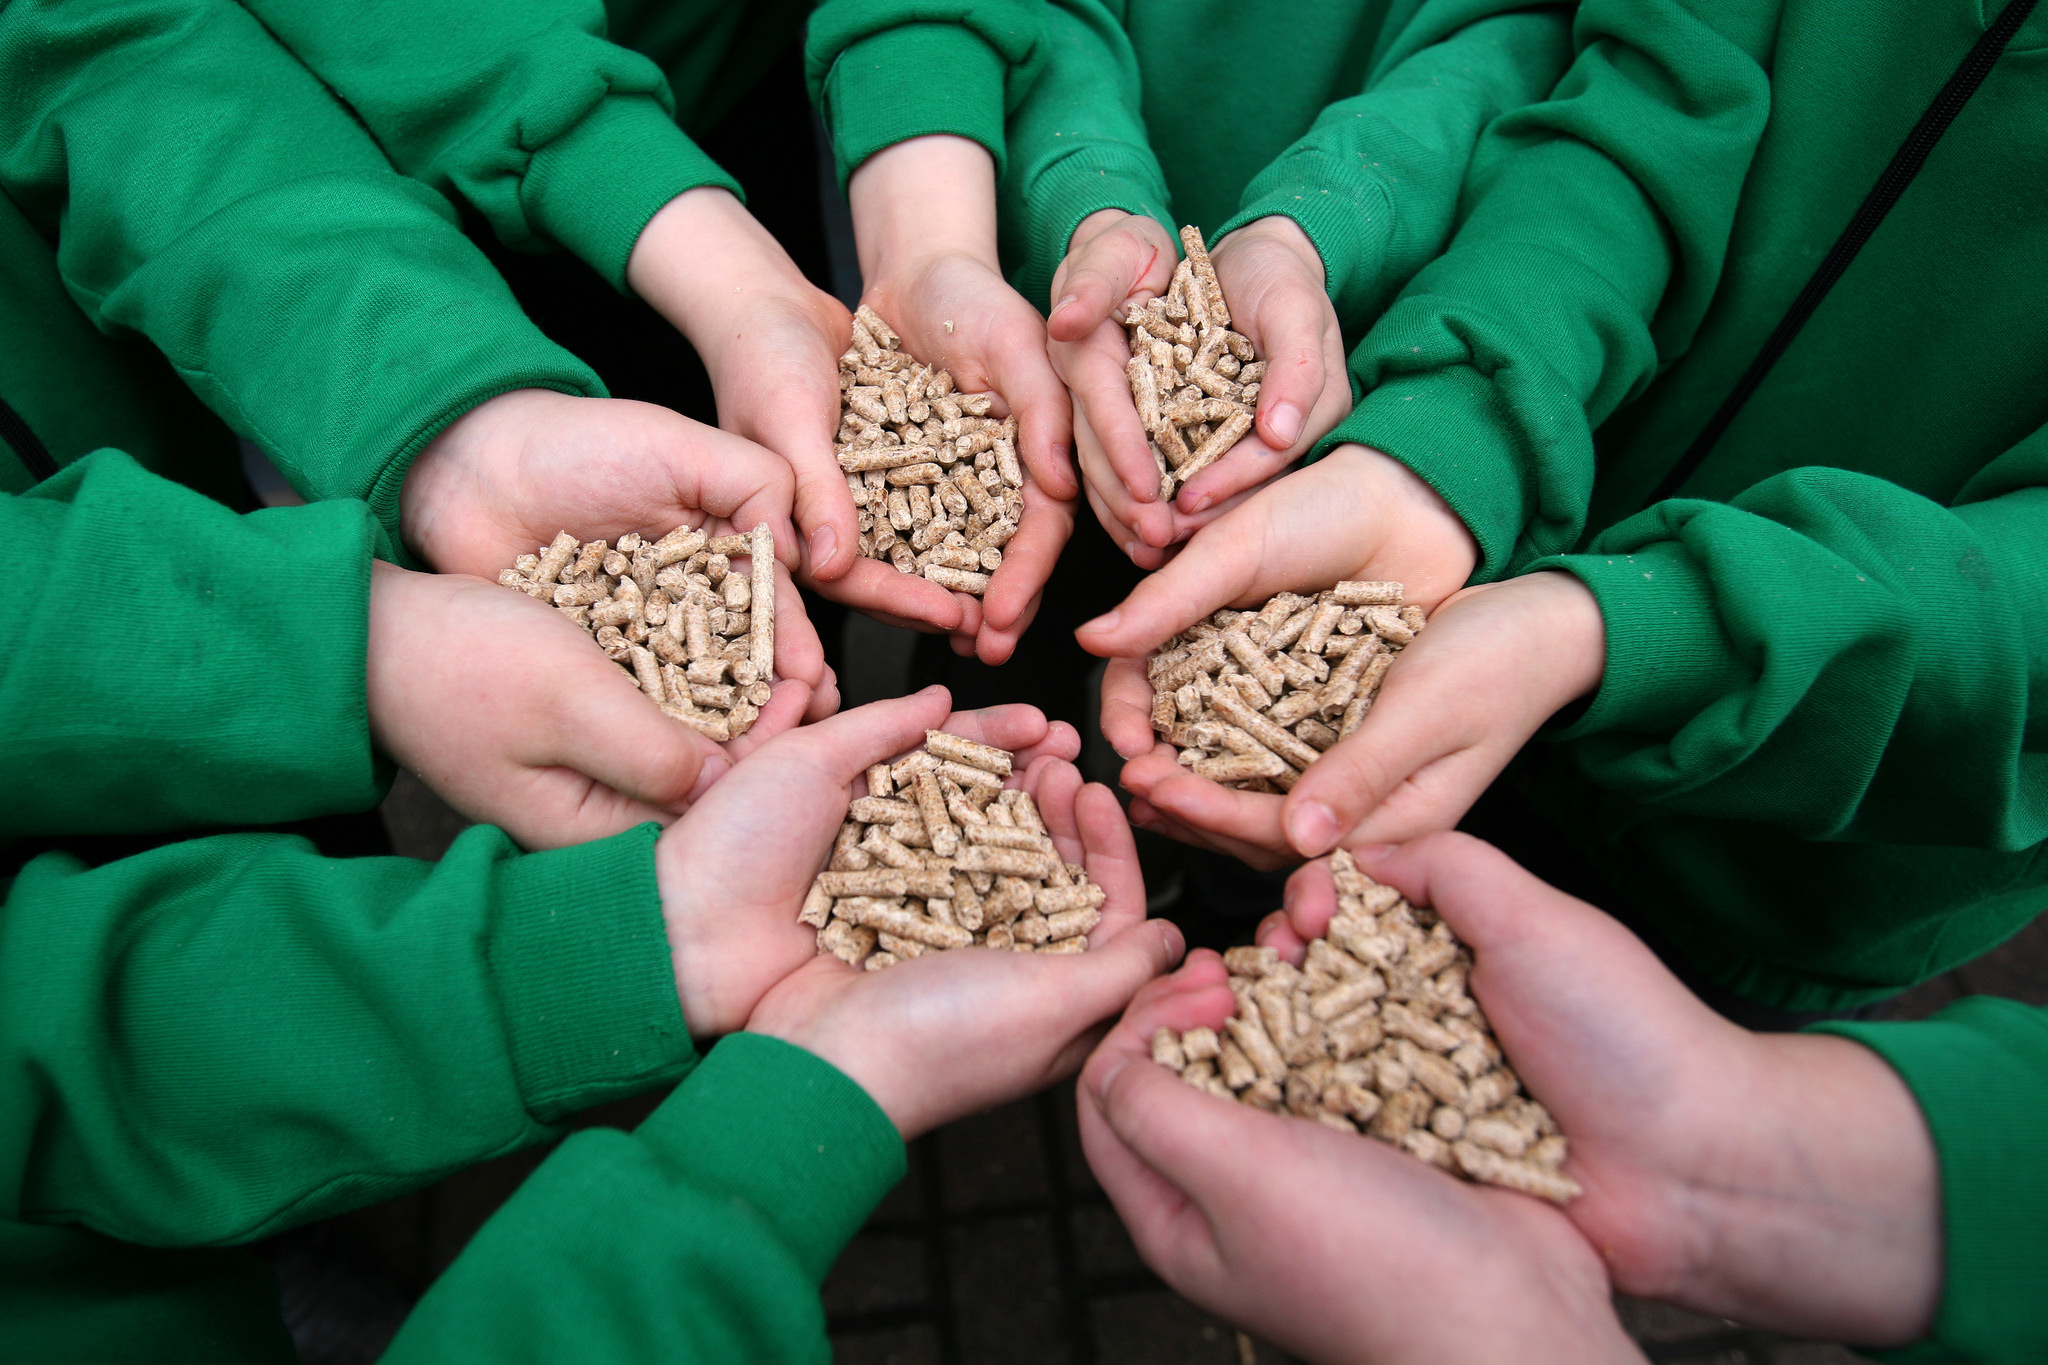 If the EU Burdens Biomass, the Environment Loses